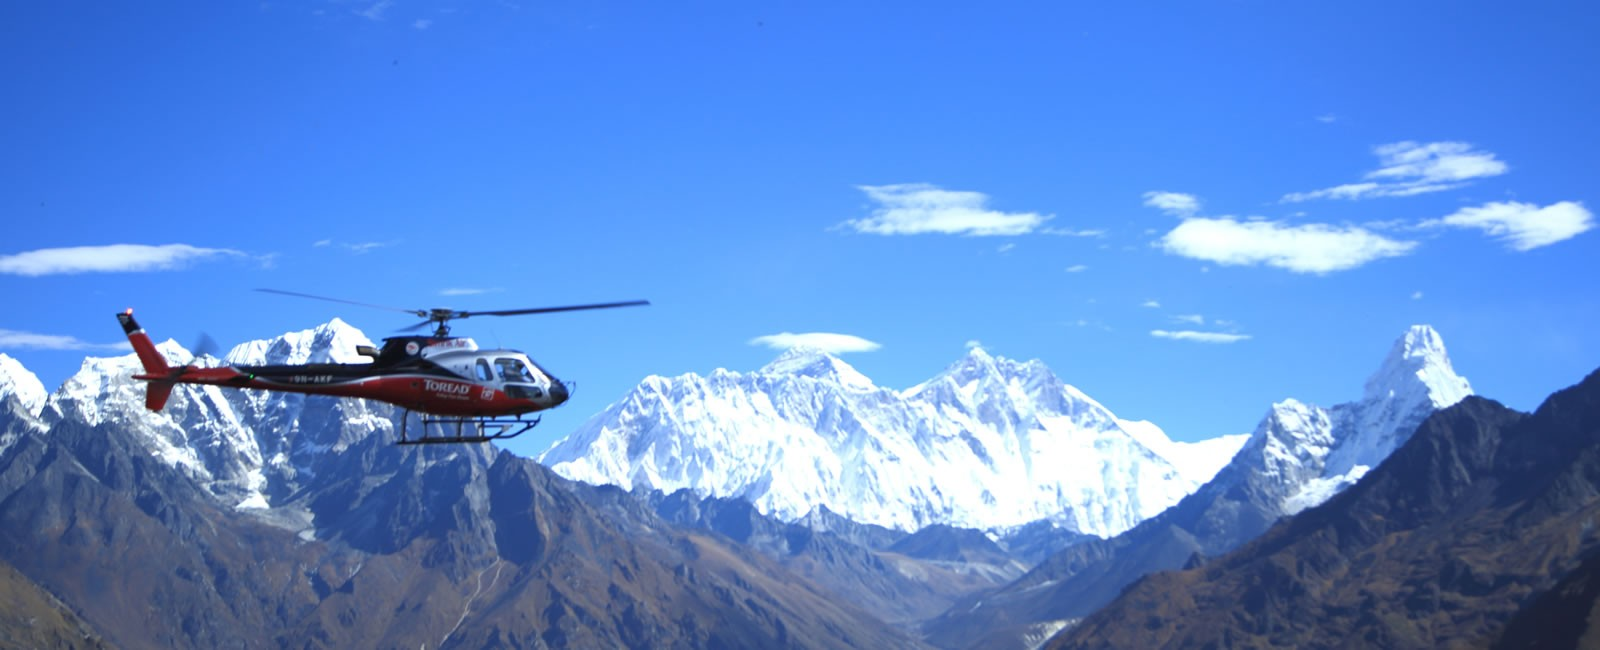 Everest Base Camp Trek and fly back by Helicopter